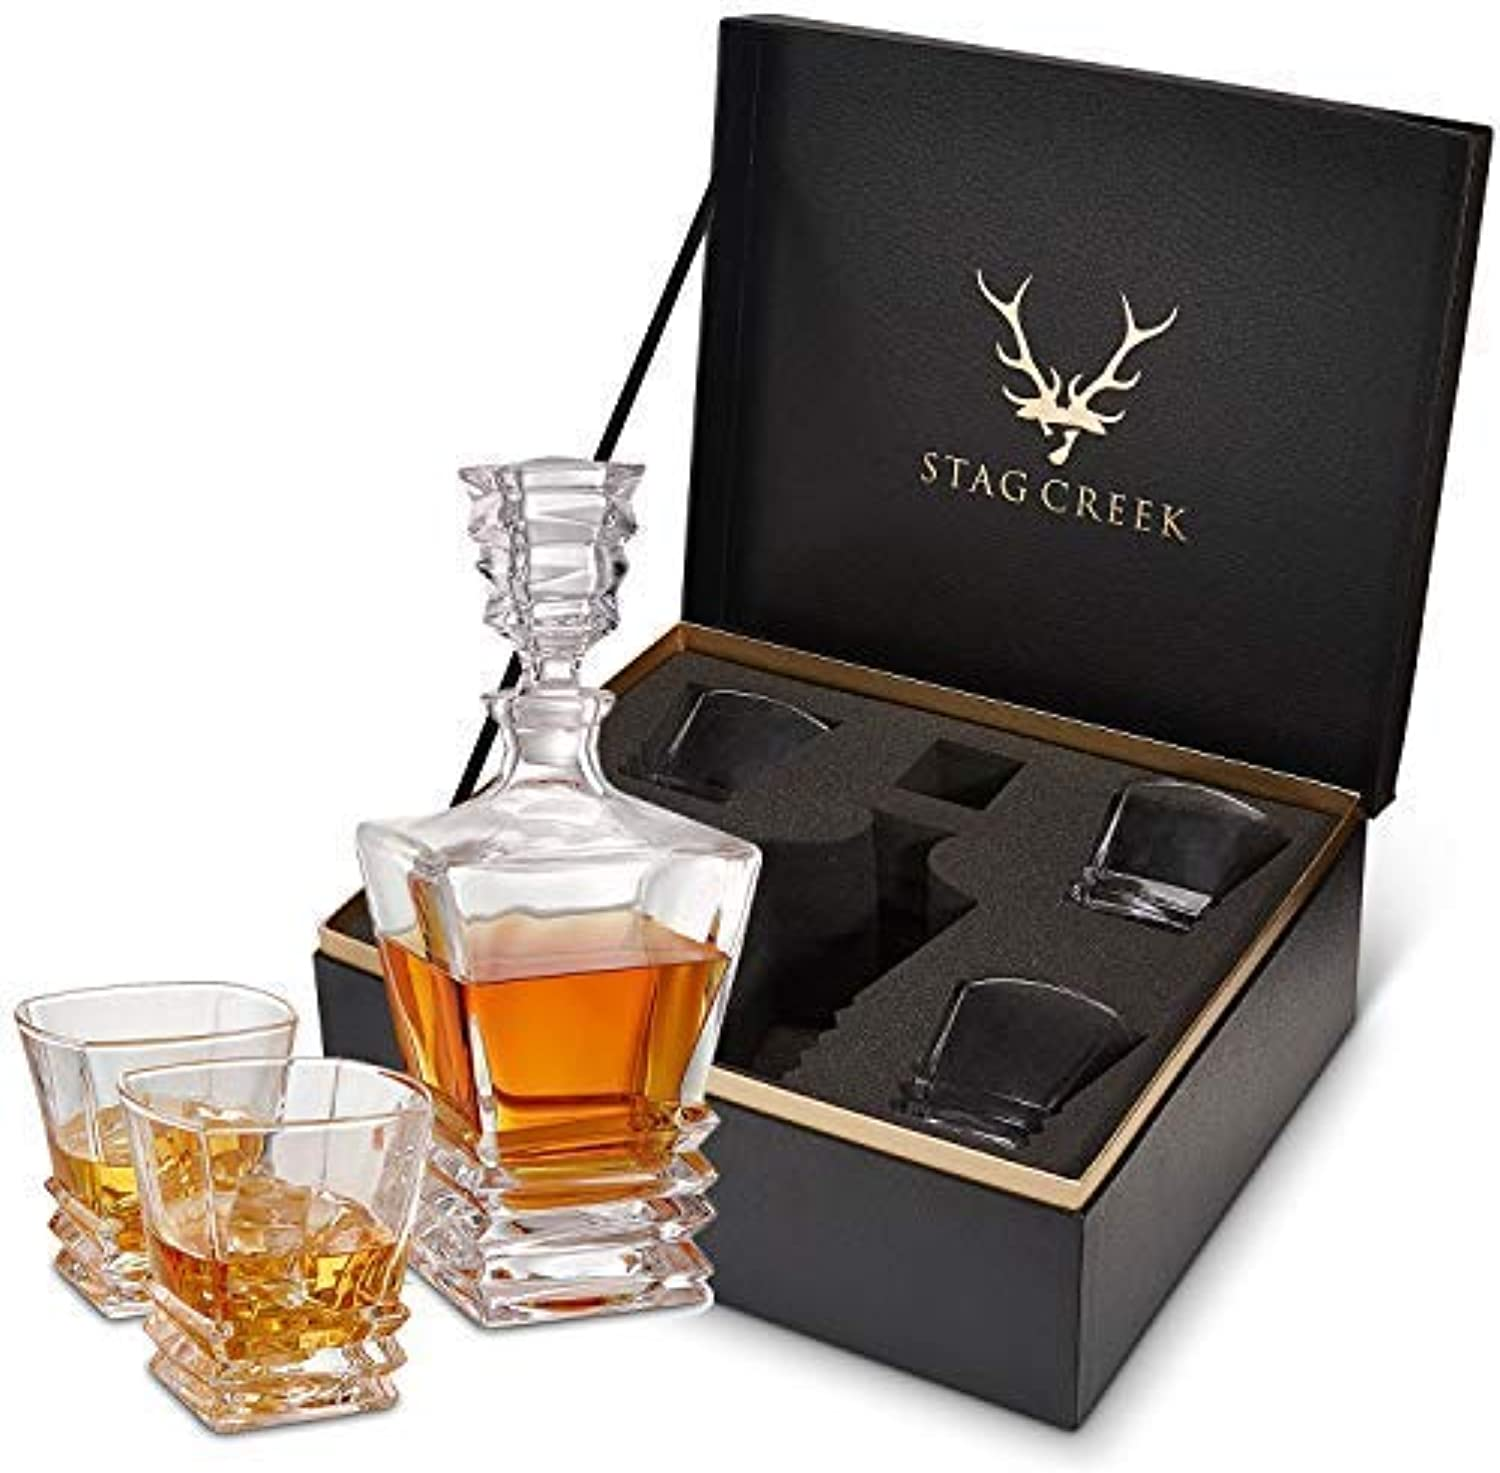 5-Piece Whiskey Decanter and Glass Set. Premium Quality Decanter and 4 Whiskey Glasses with Luxurious and Elegant Box. Liquor Decanters for Bourbon, Wine, Brandy, Gin and Whisky. Dishwasher Safe